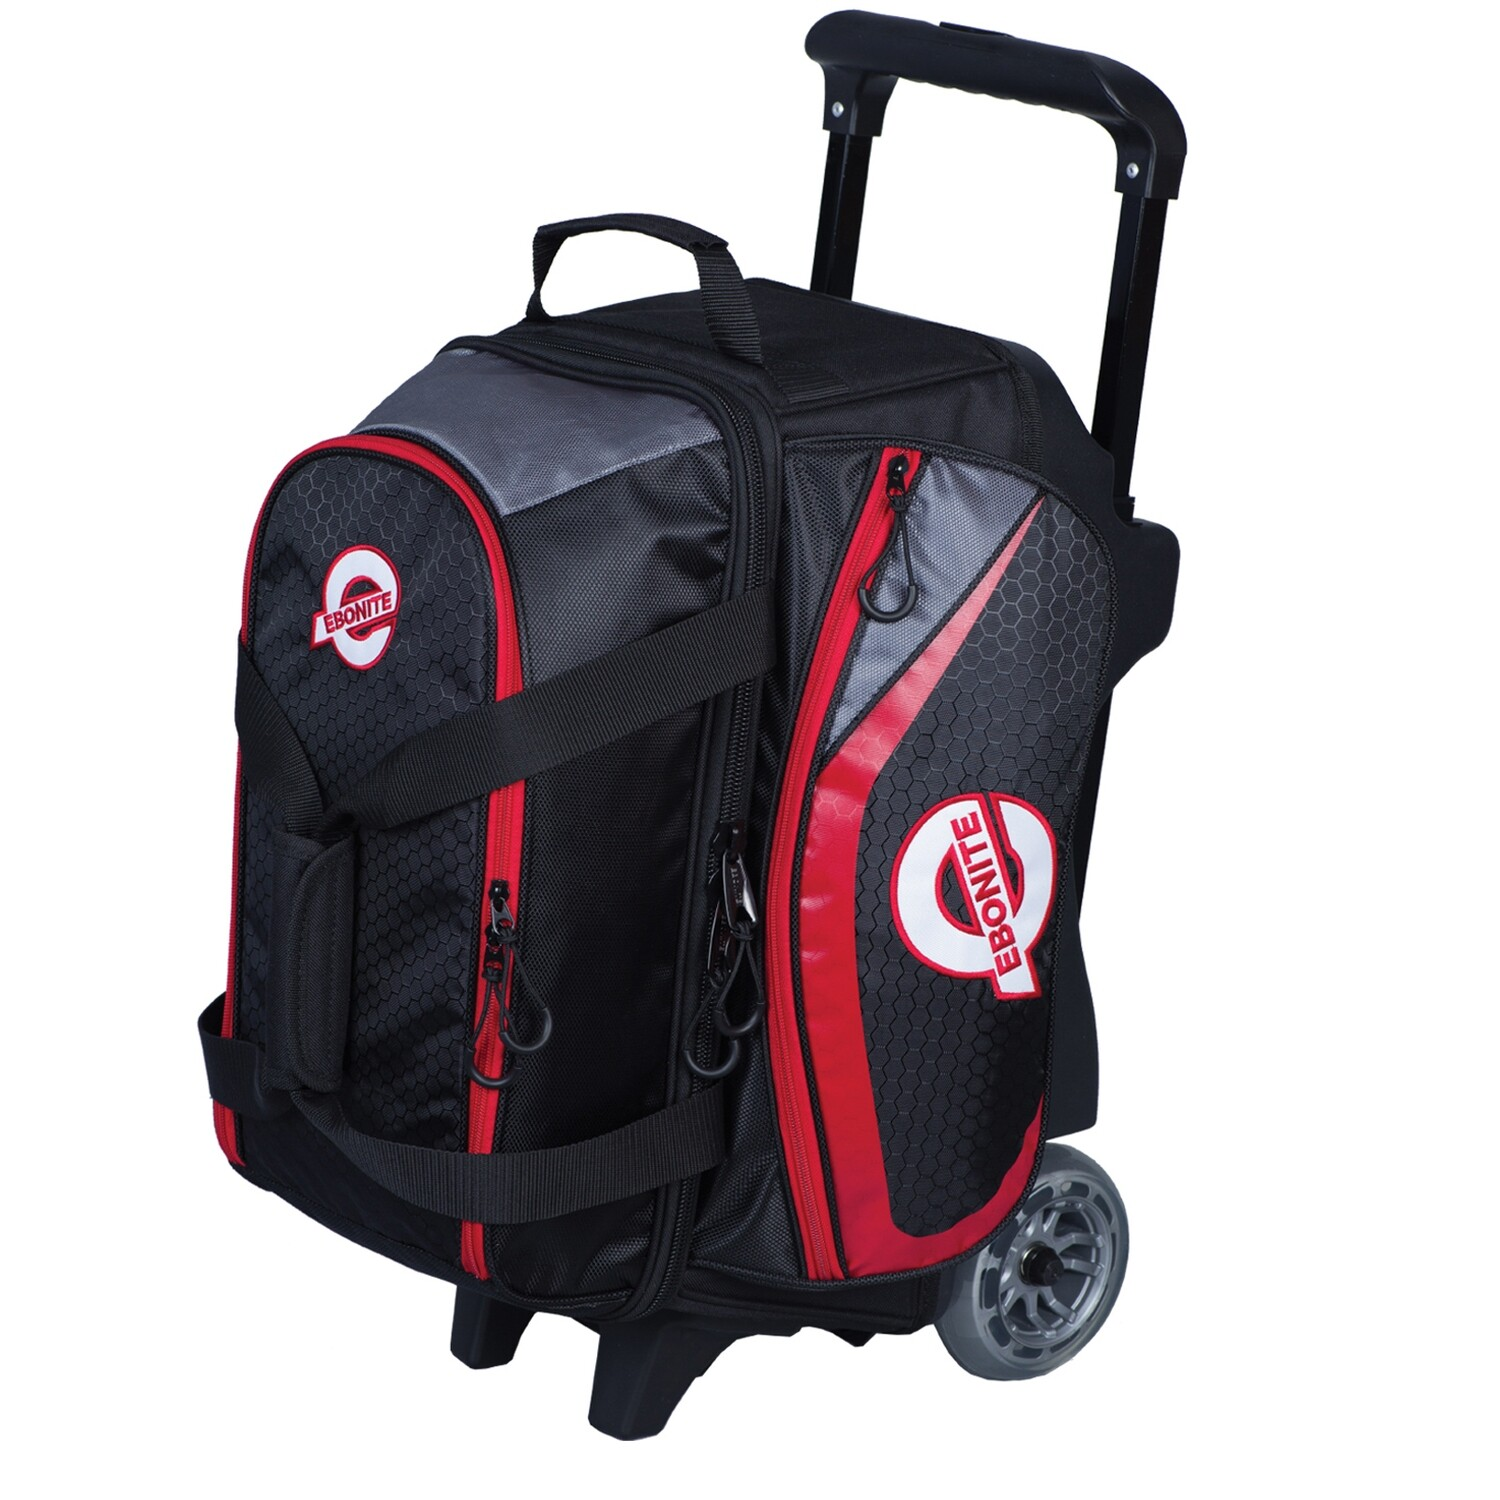 Ebonite Players Red/Black 2 Ball Roller Bowling Bag